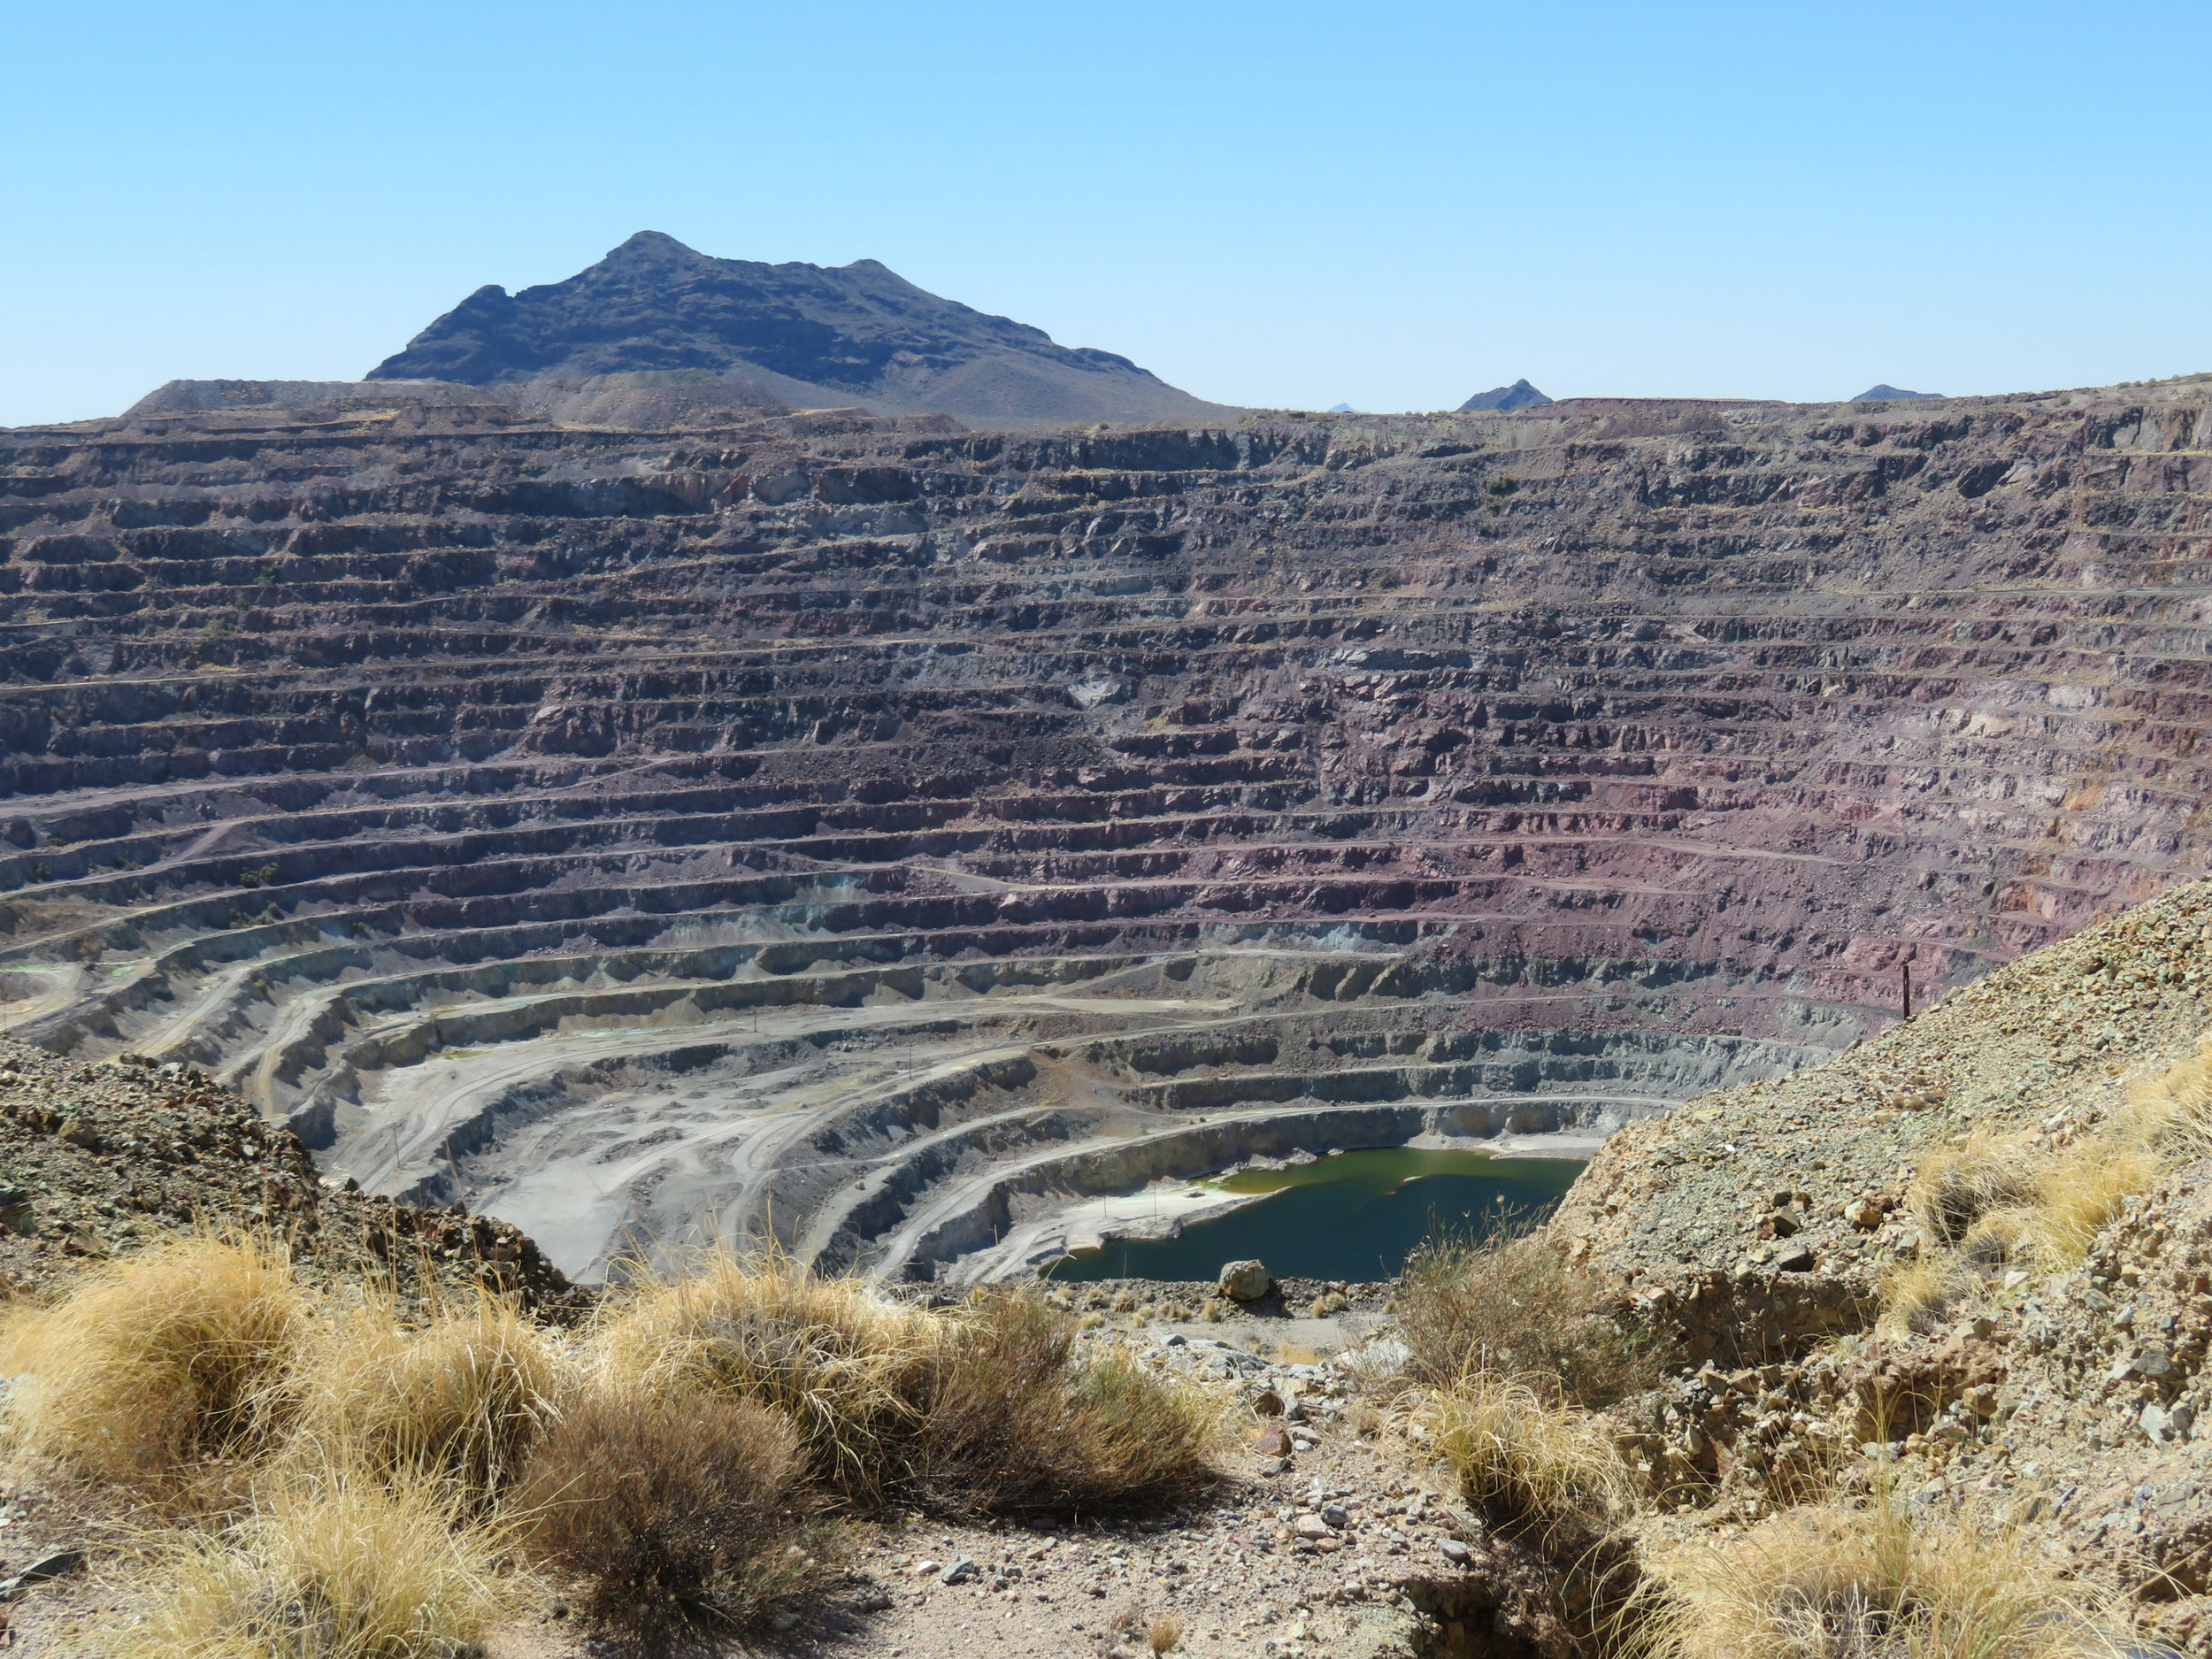 This copper pit mine, as seen from the overlook, is massive.